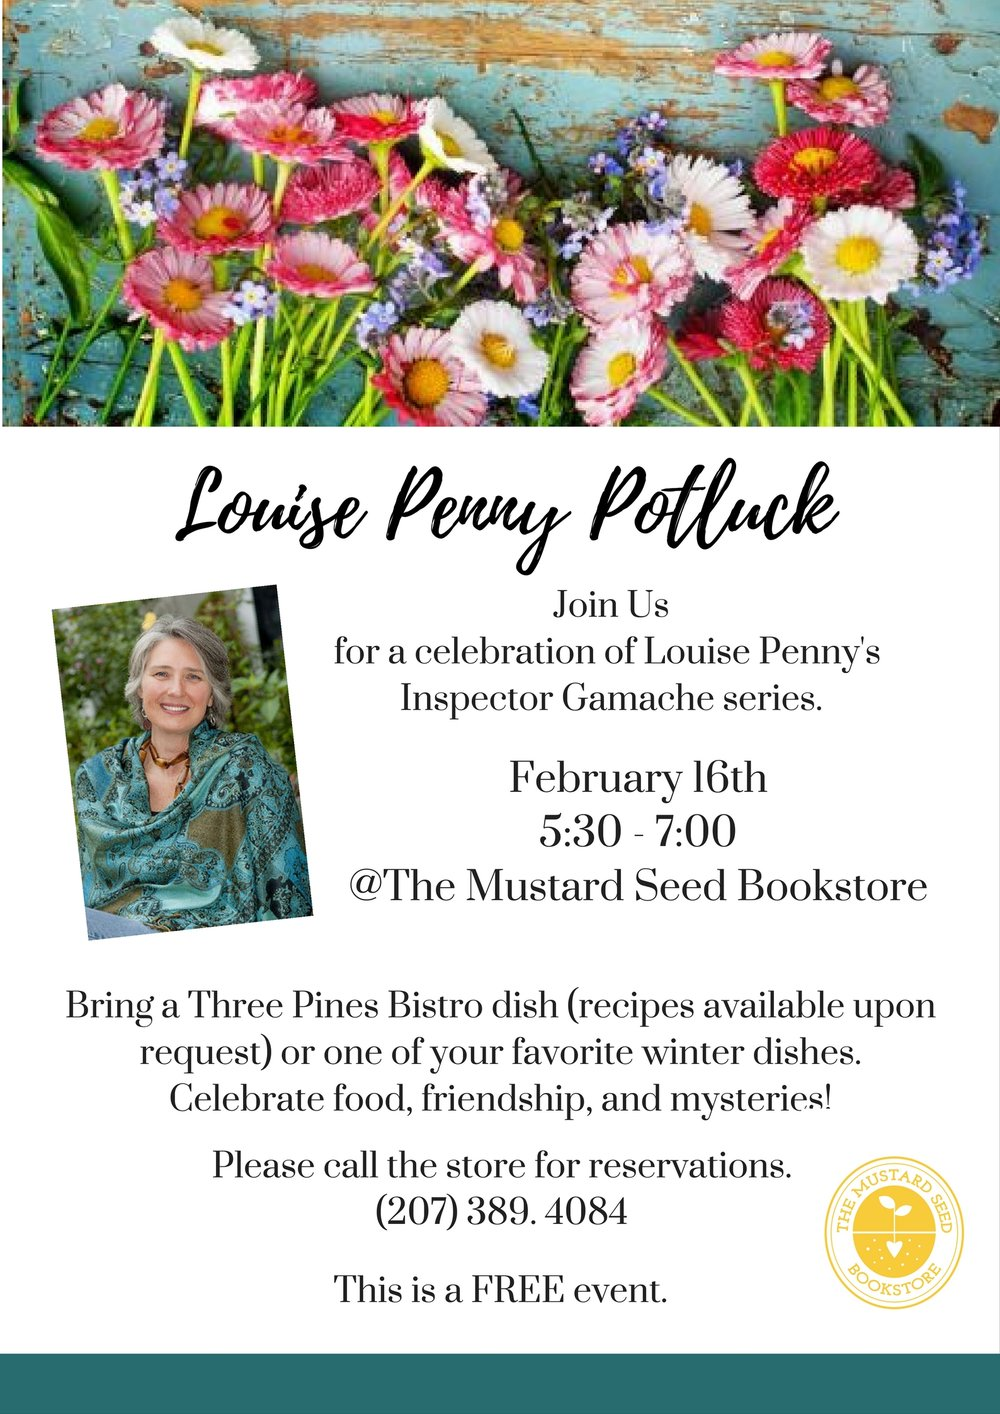 Louise Penny Potluck.jpg